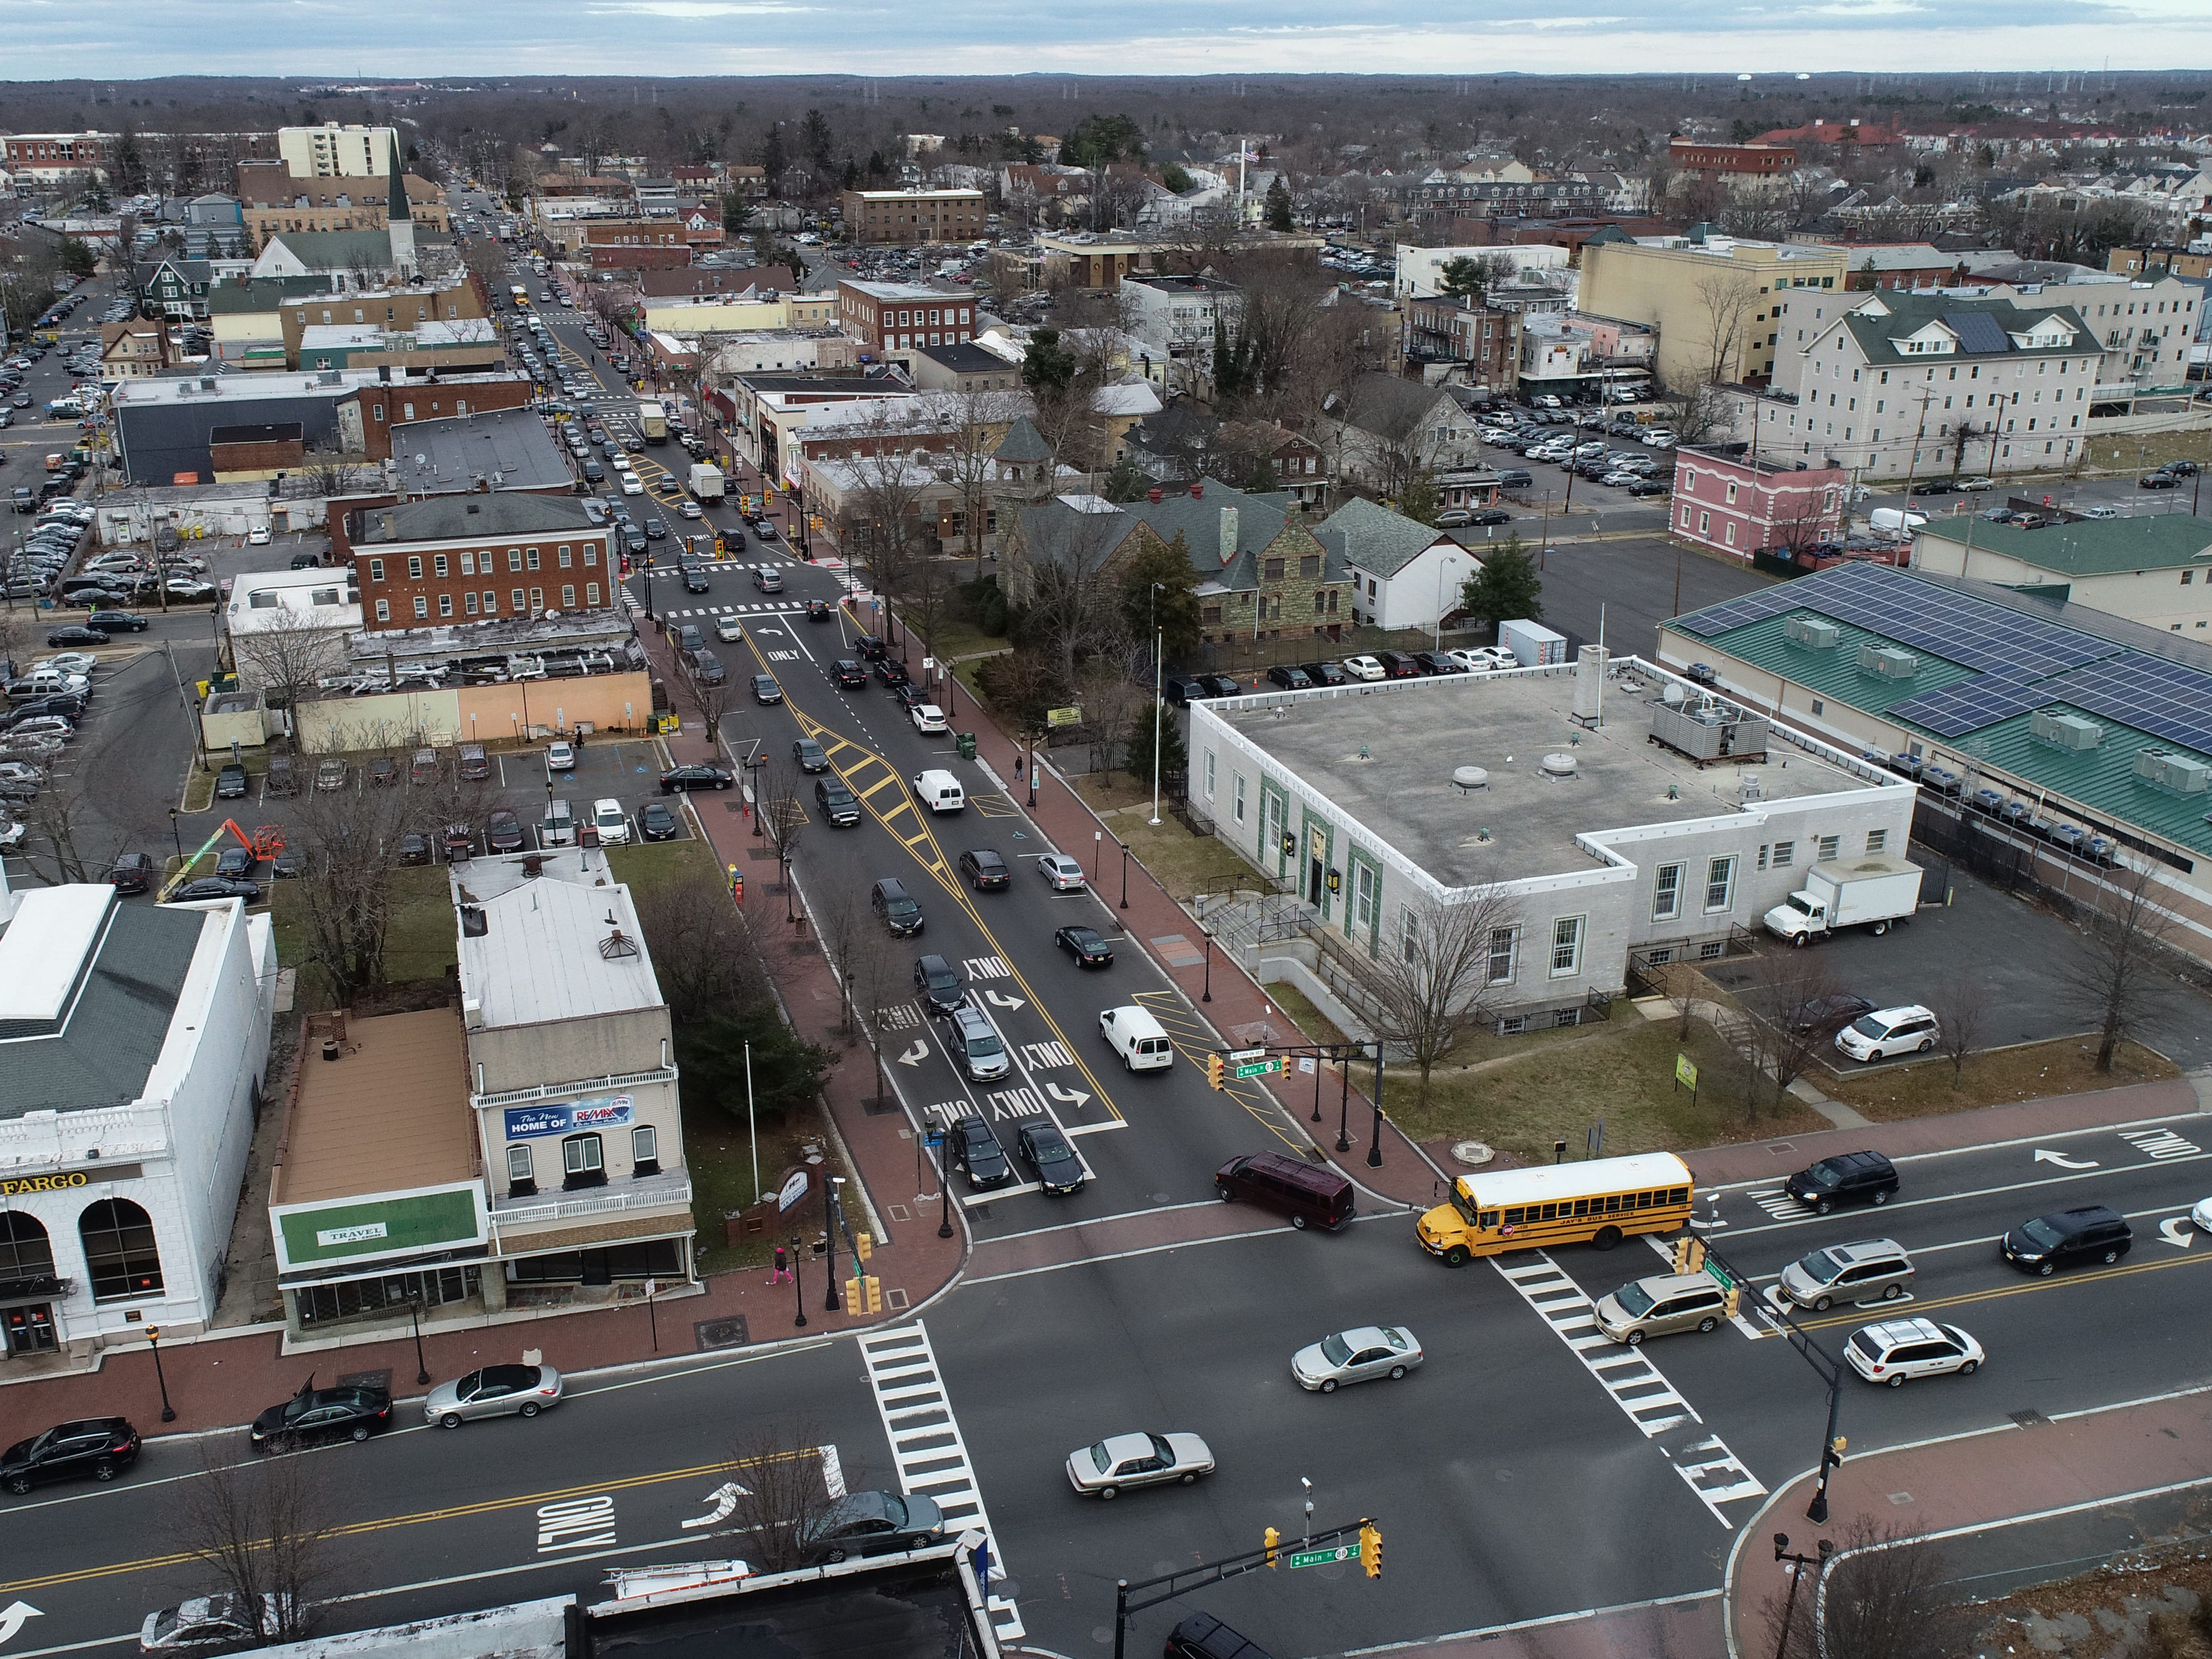 Aerial view of Lakewood looking north along Clifton Avenue from the intersection with Route 88 shown Thursday, January 3, 2019.